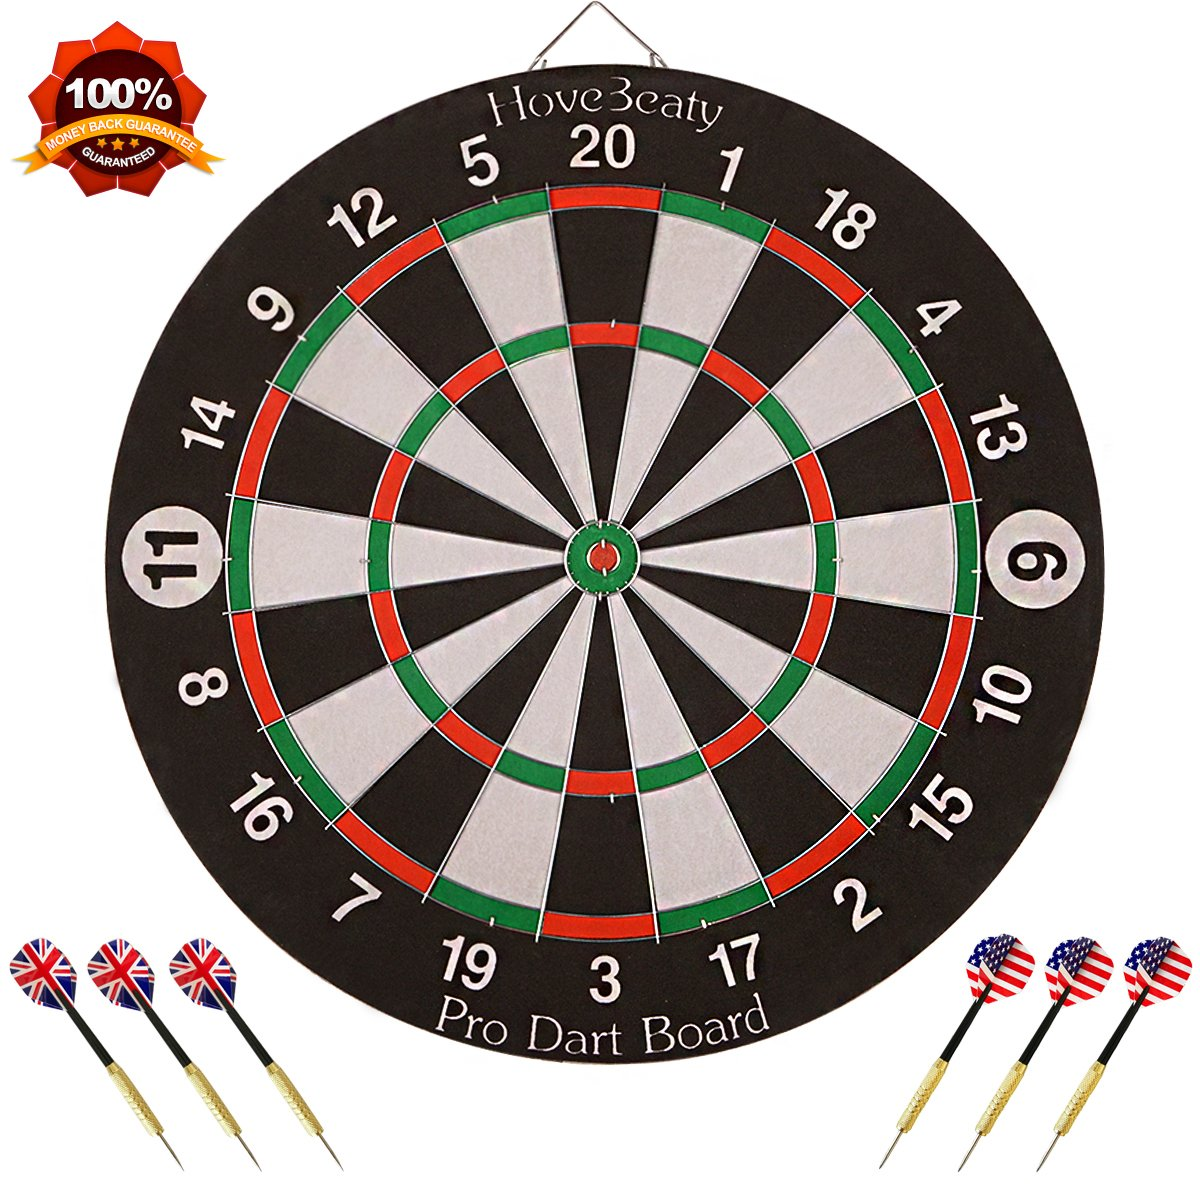 HoveBeaty Dart Board, Dart Game Set with 6 Metal Darts and Double-Sided Flocking Dartboard (18 Inches) by HoveBeaty